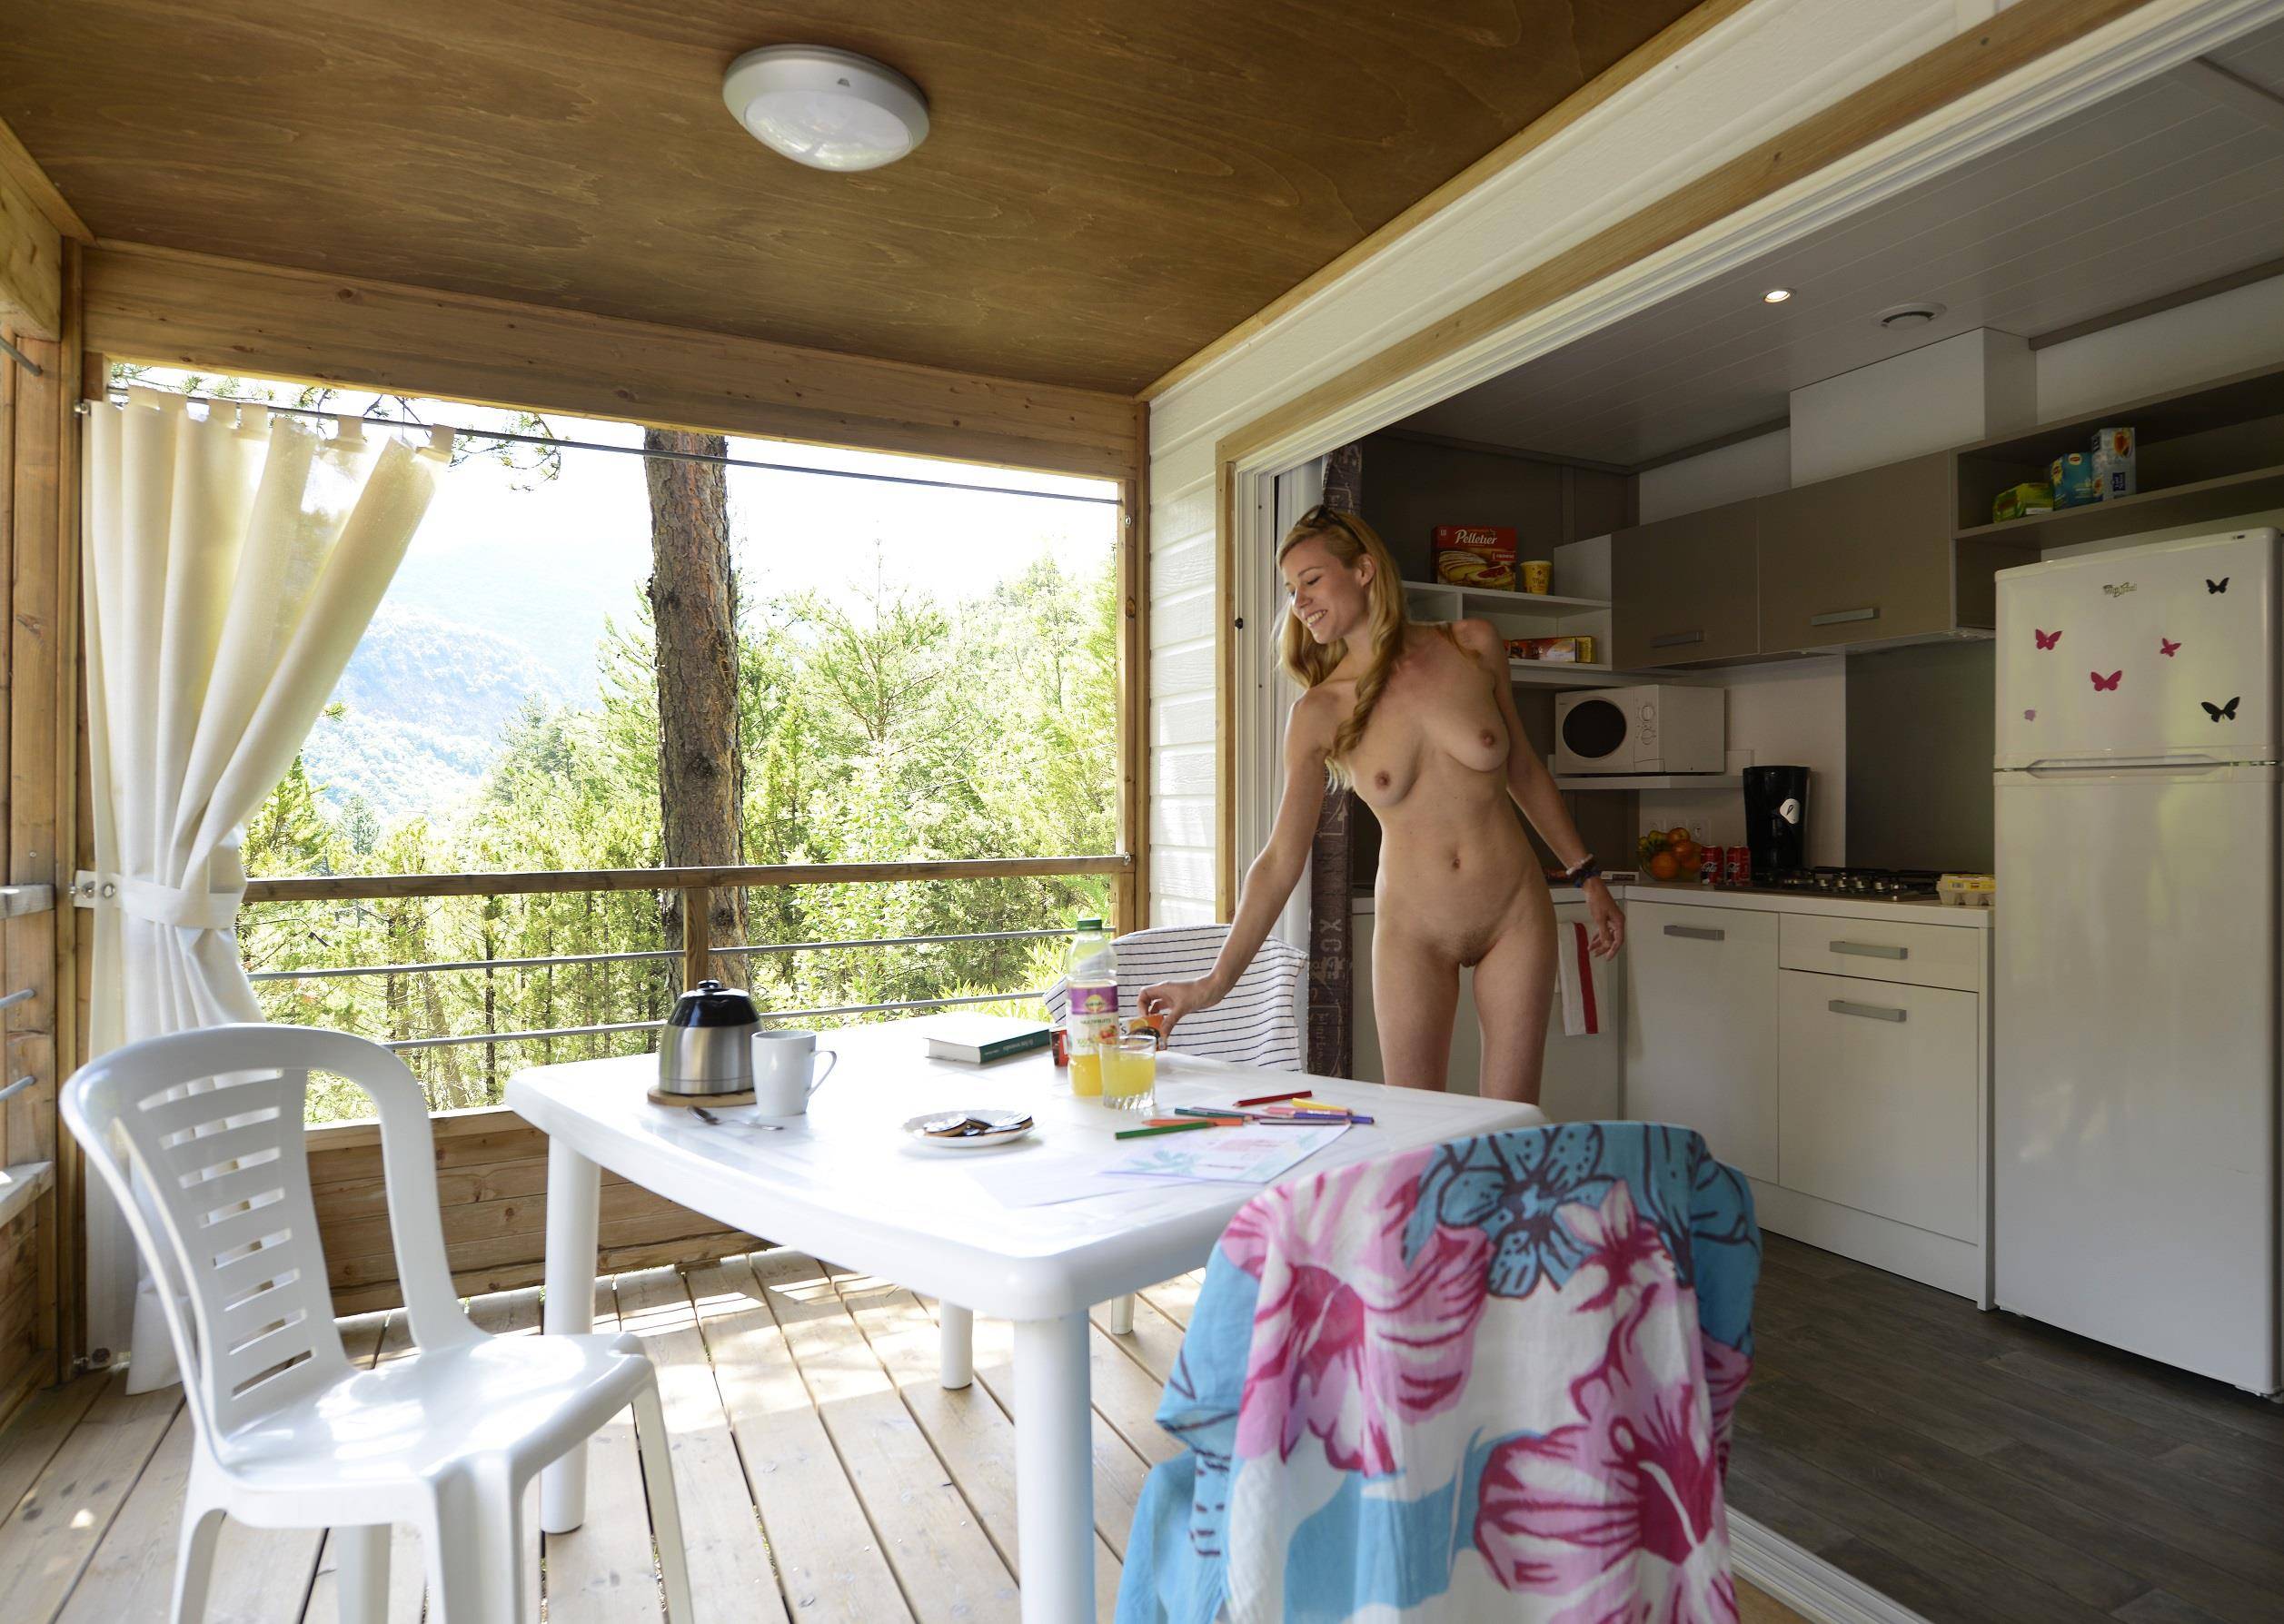 Location - Chalet Vip Papillon - Camping Club Origan Domaine Naturiste